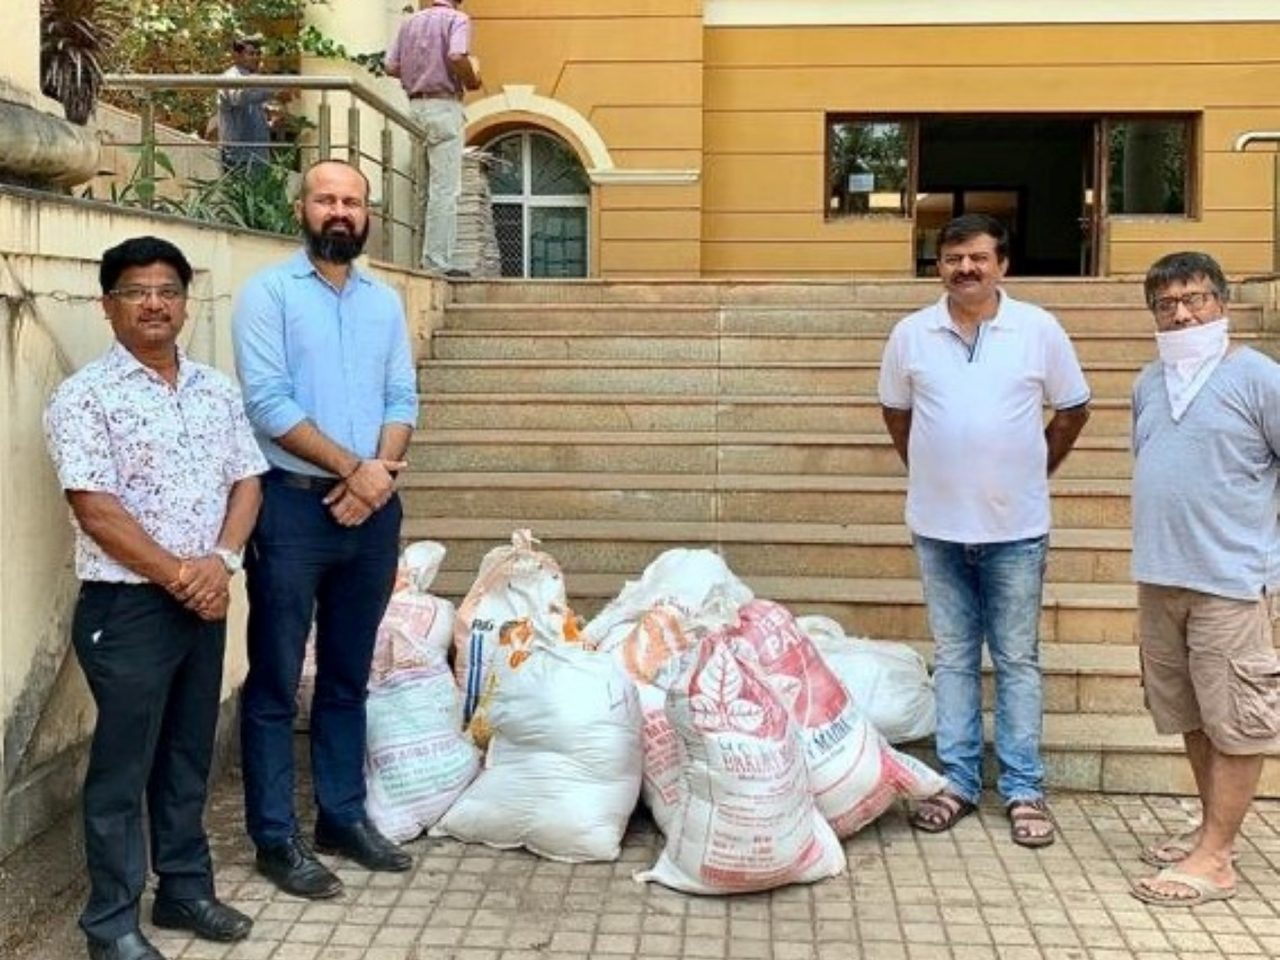 Collectorate South Goa thanks Gujarat Samaj for donating 400 Kg rice for distribution to the needy